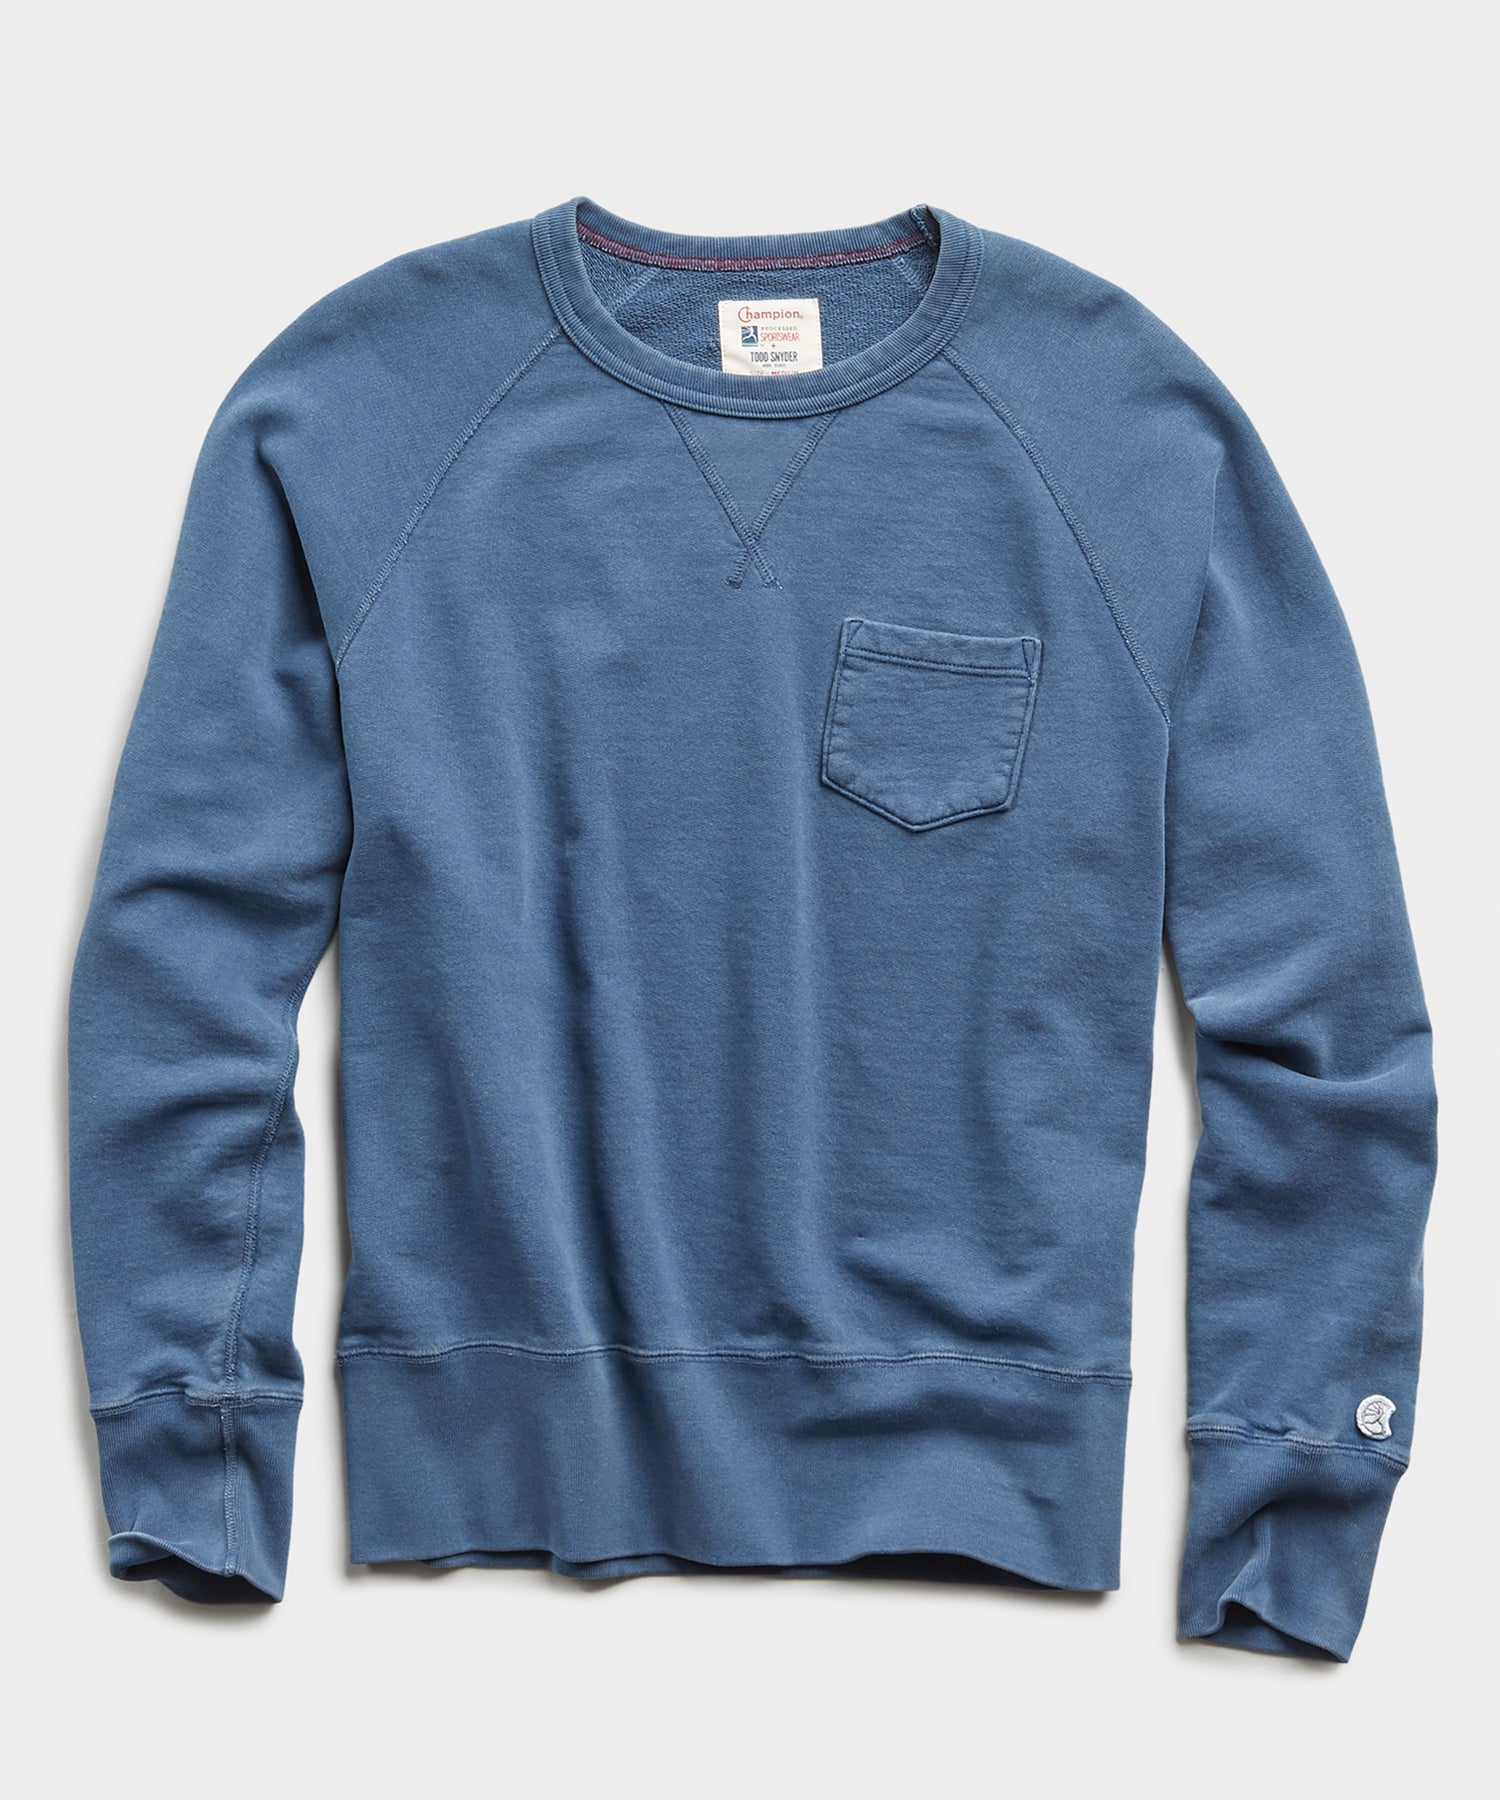 Lightweight Pocket Sweatshirt in Cadet Blue